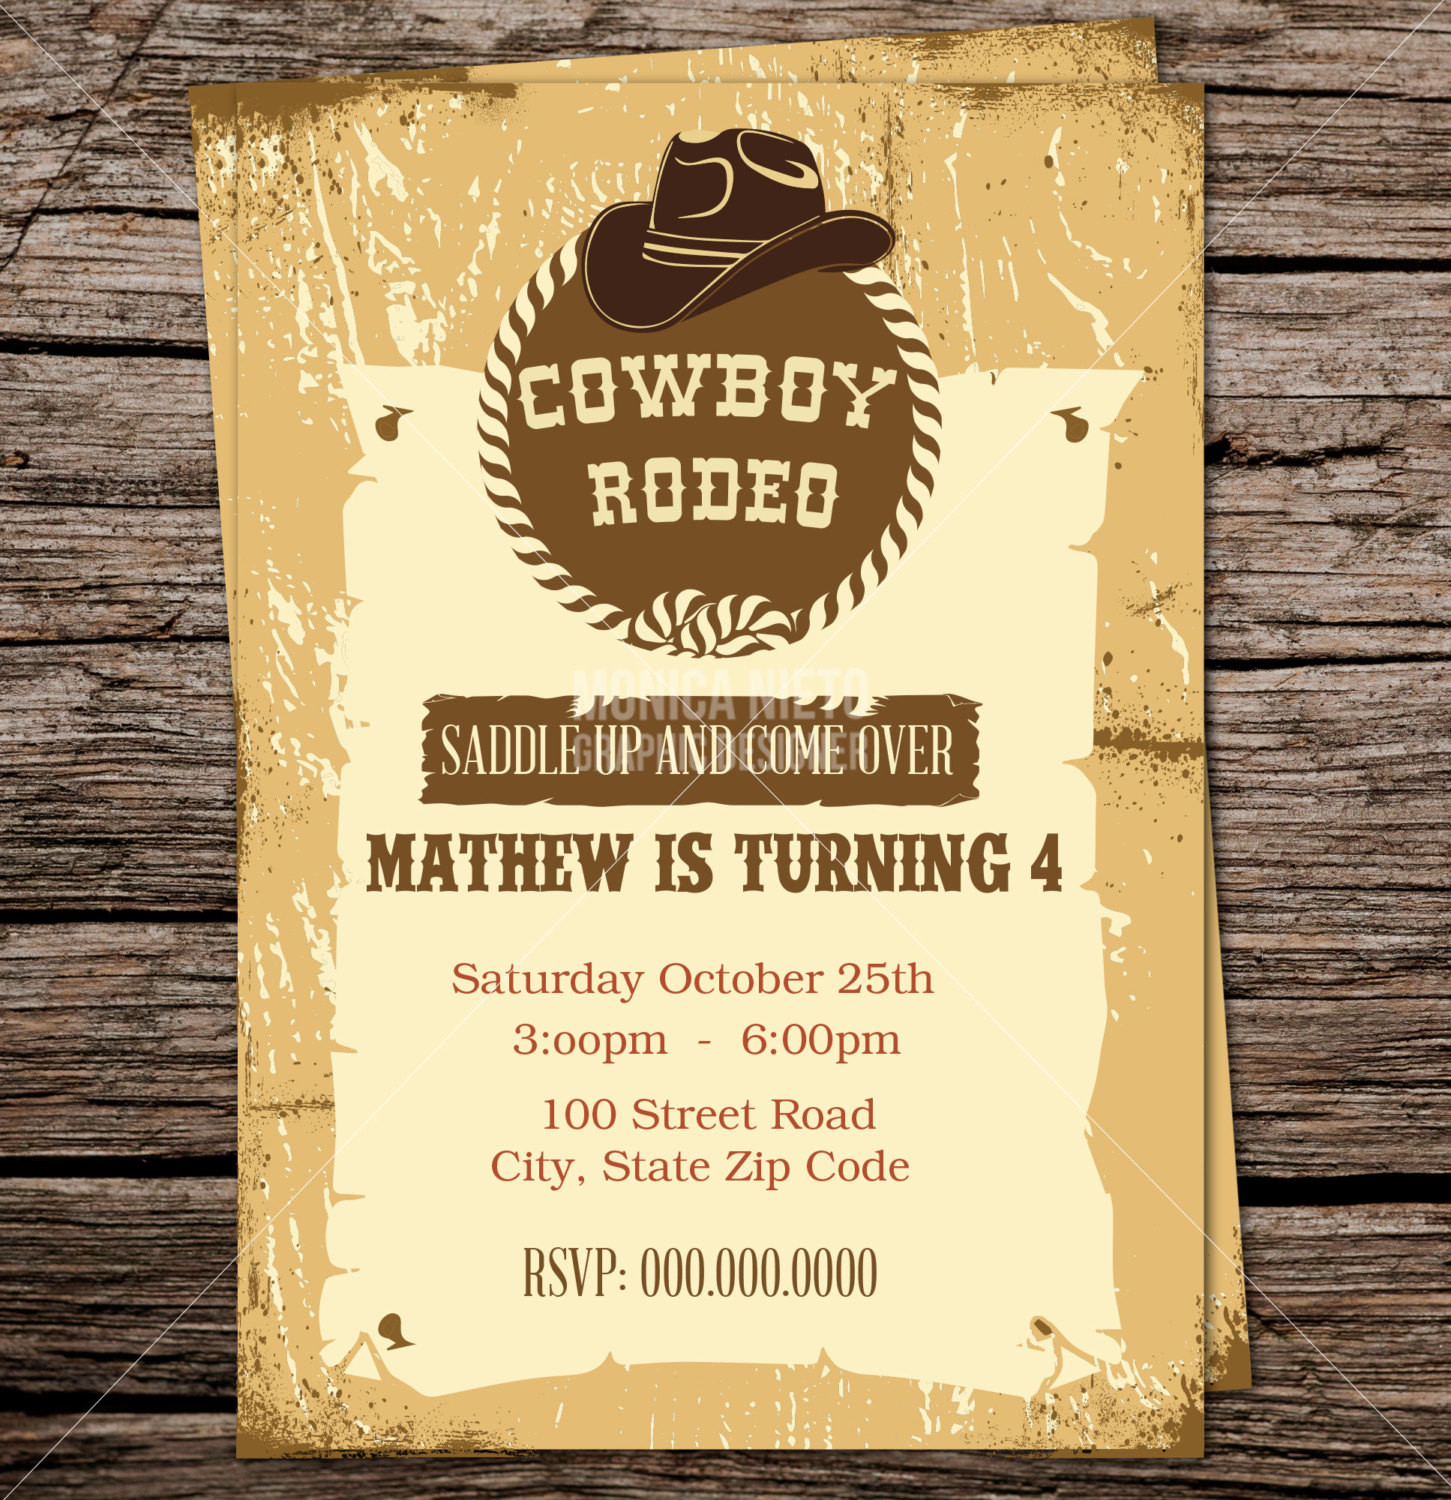 Best ideas about Cowboy Birthday Invitations . Save or Pin Cowboy Birthday Party Invitation Western Rodeo Invitation Now.